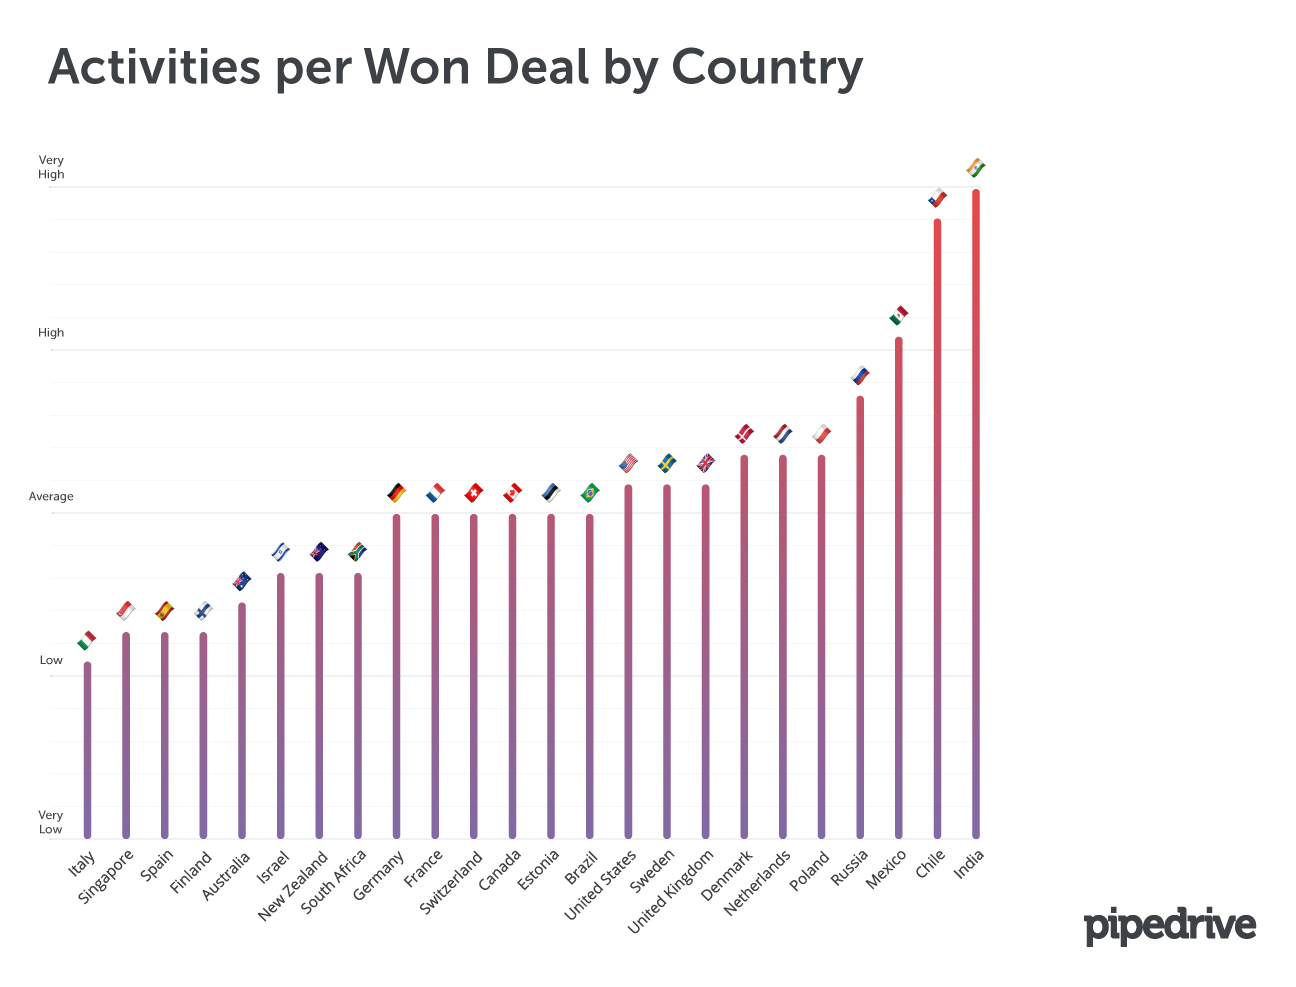 Activities per Won Deal by Country